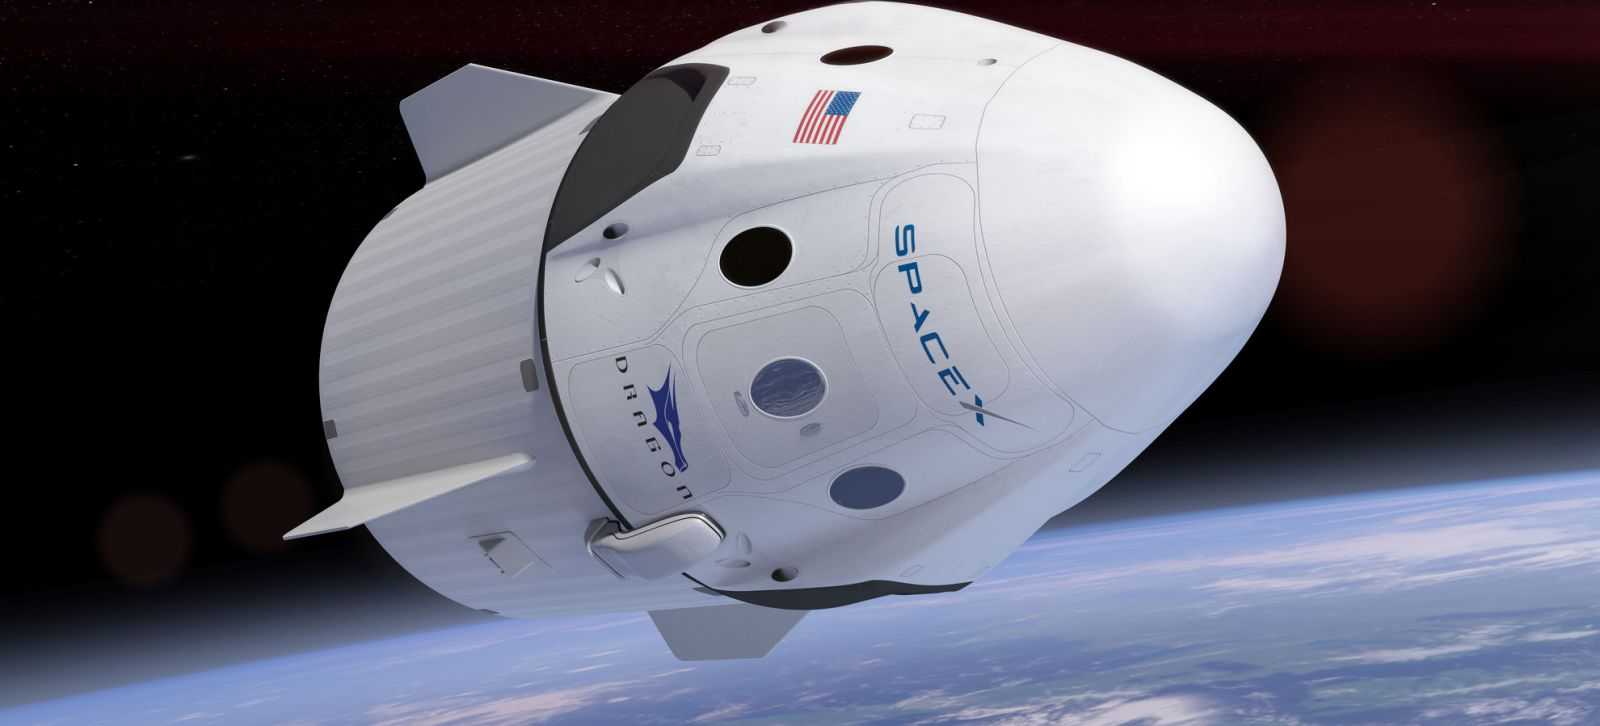 space flight spacex dragon v2 insider - photo #47